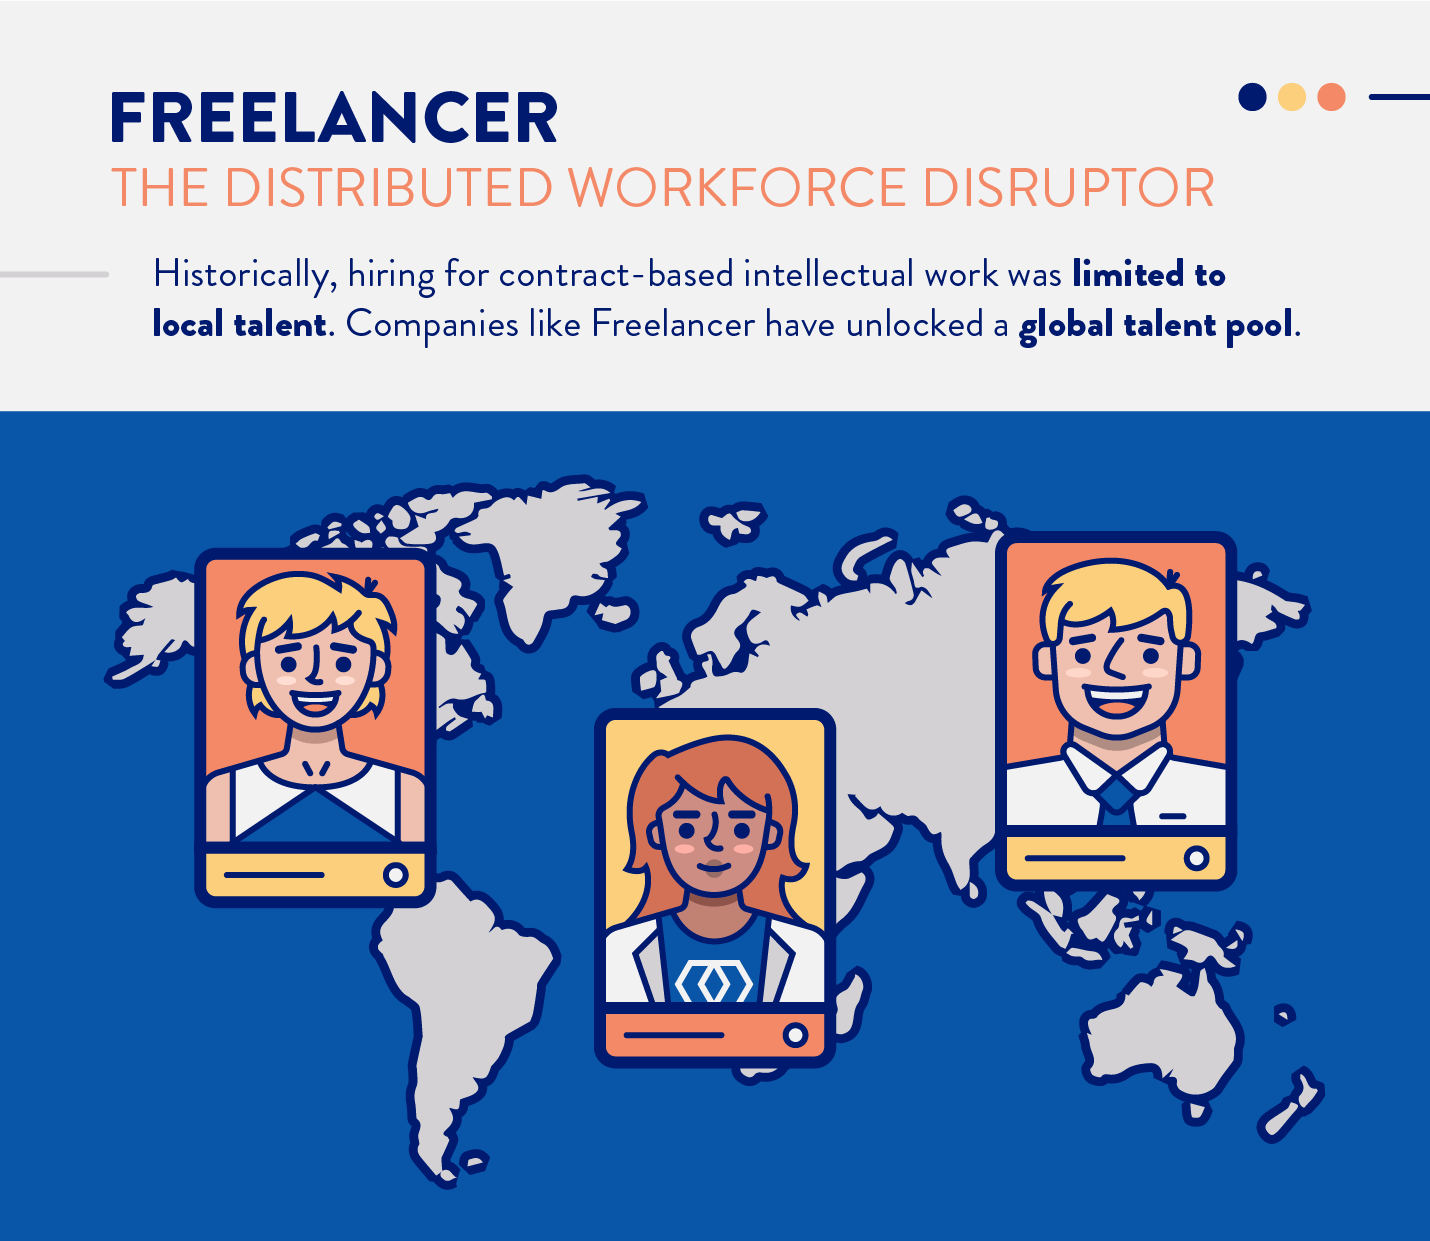 How freelancer disrupted the workforce and labor market